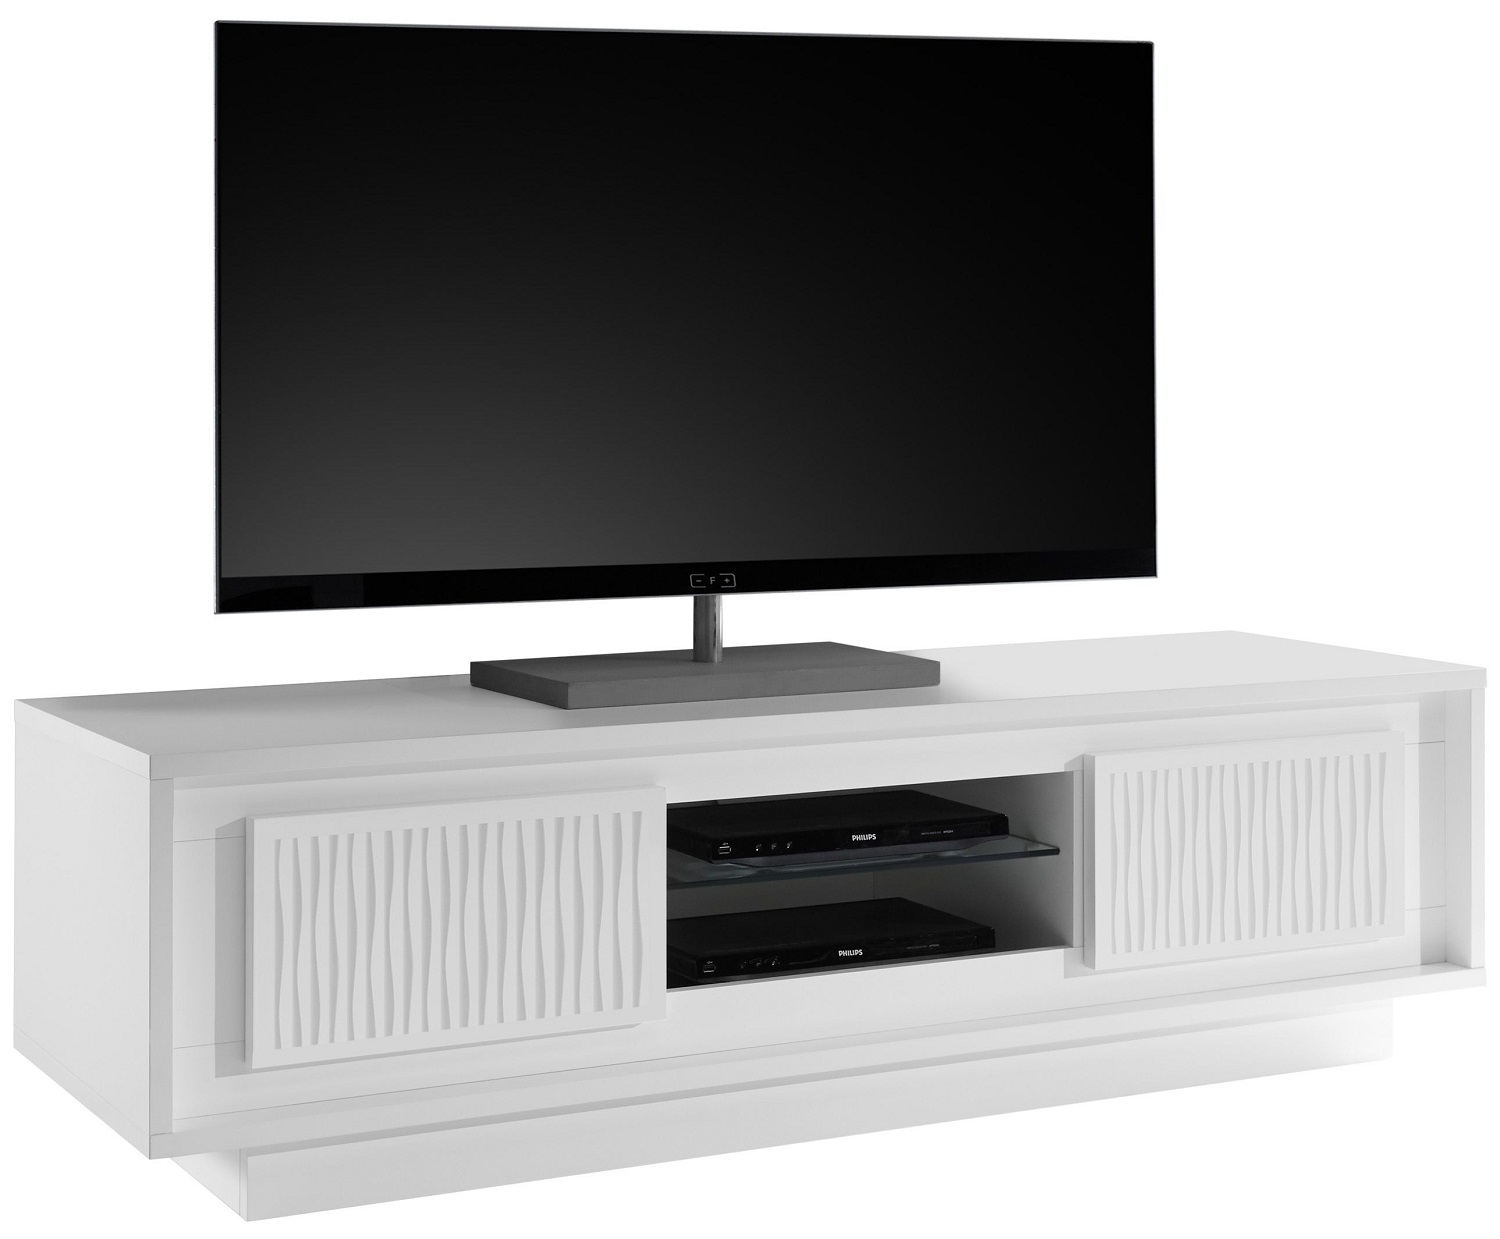 Tv meubel SKY 156 cm breed - Gestreept wit